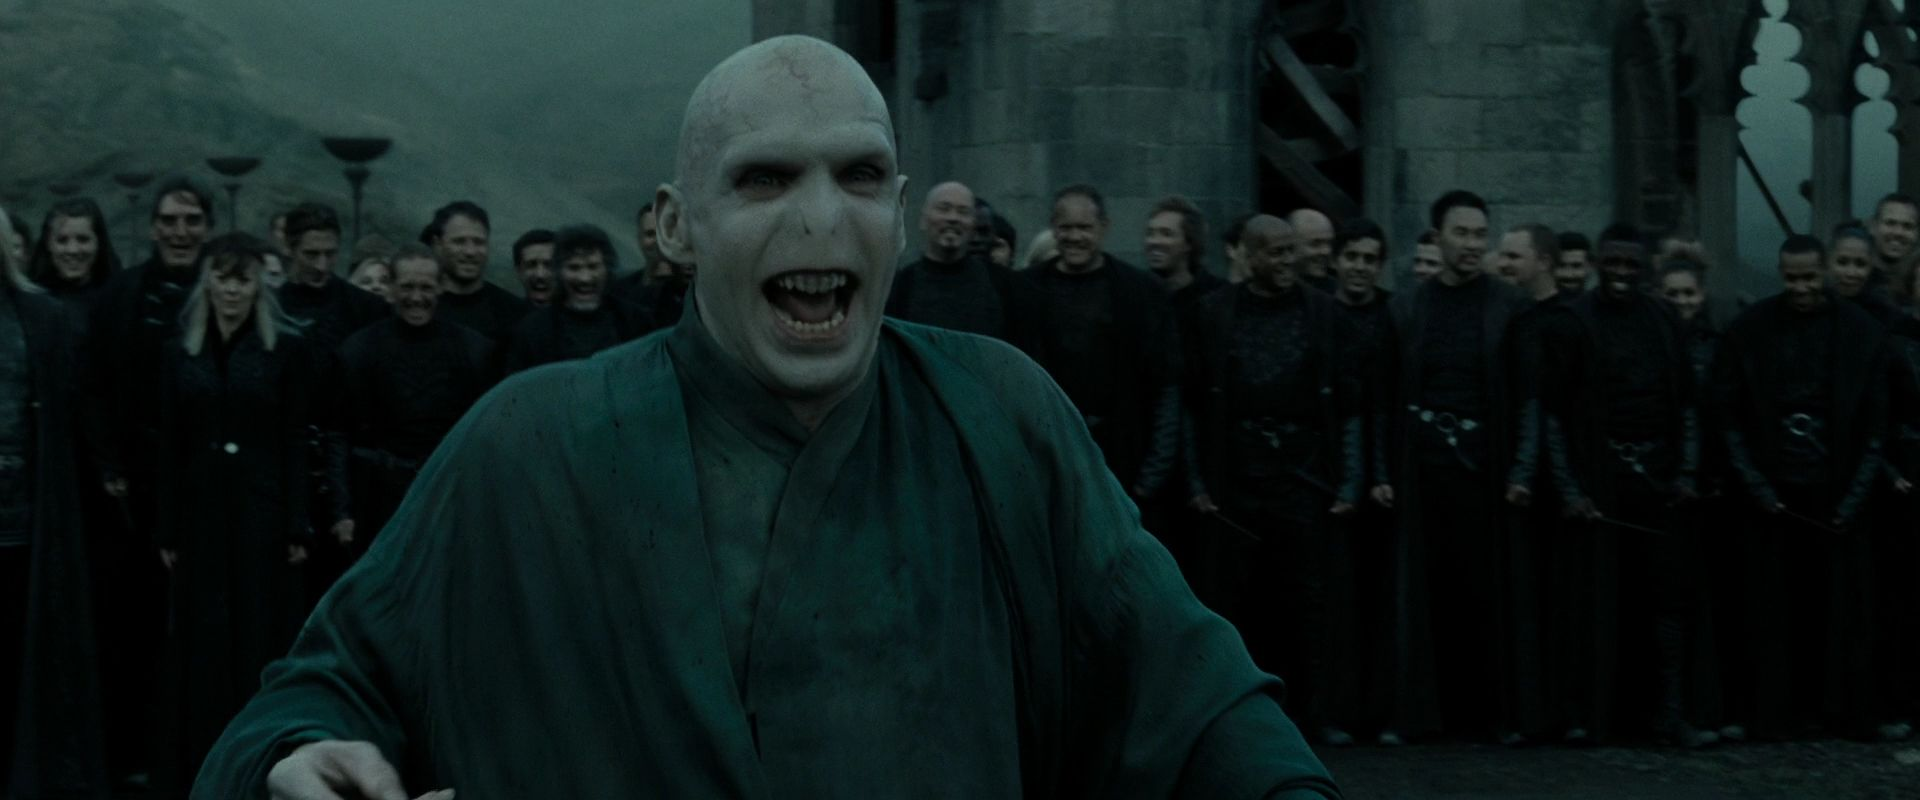 image of Voldemort's epic screams